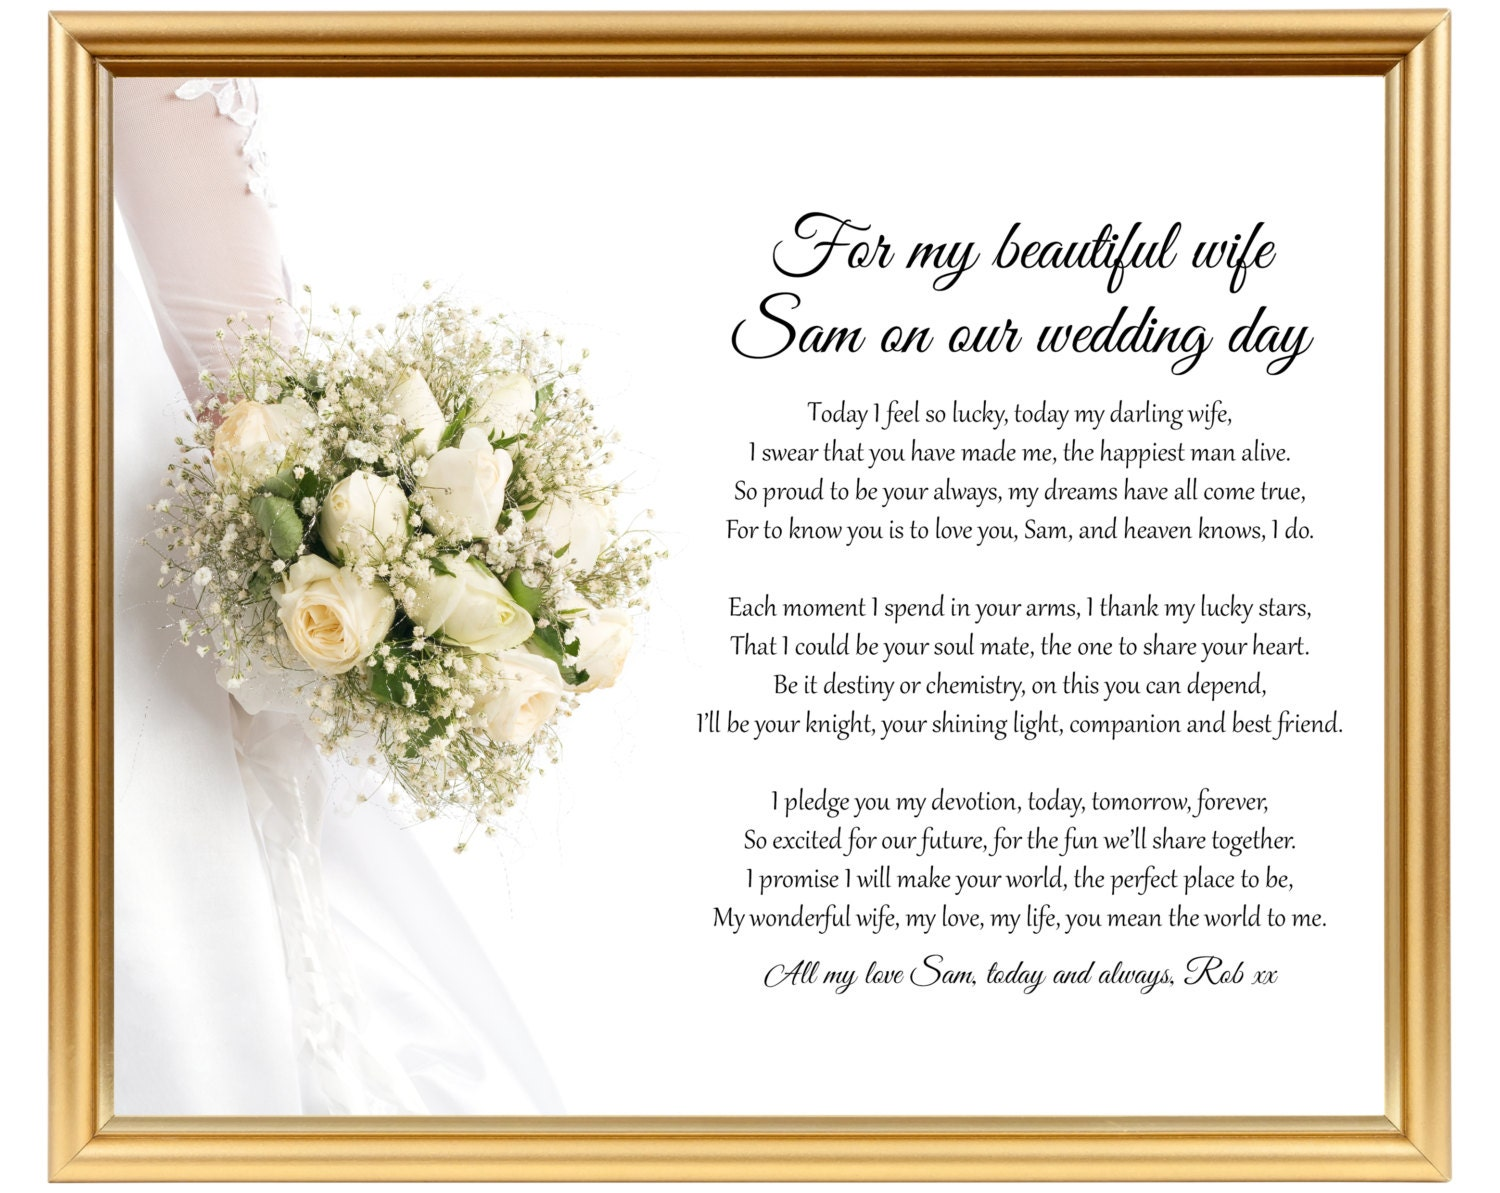 Wedding Gift For Your Wife: Groom To Bride Wedding Gift Poem Gift For Wife On Wedding